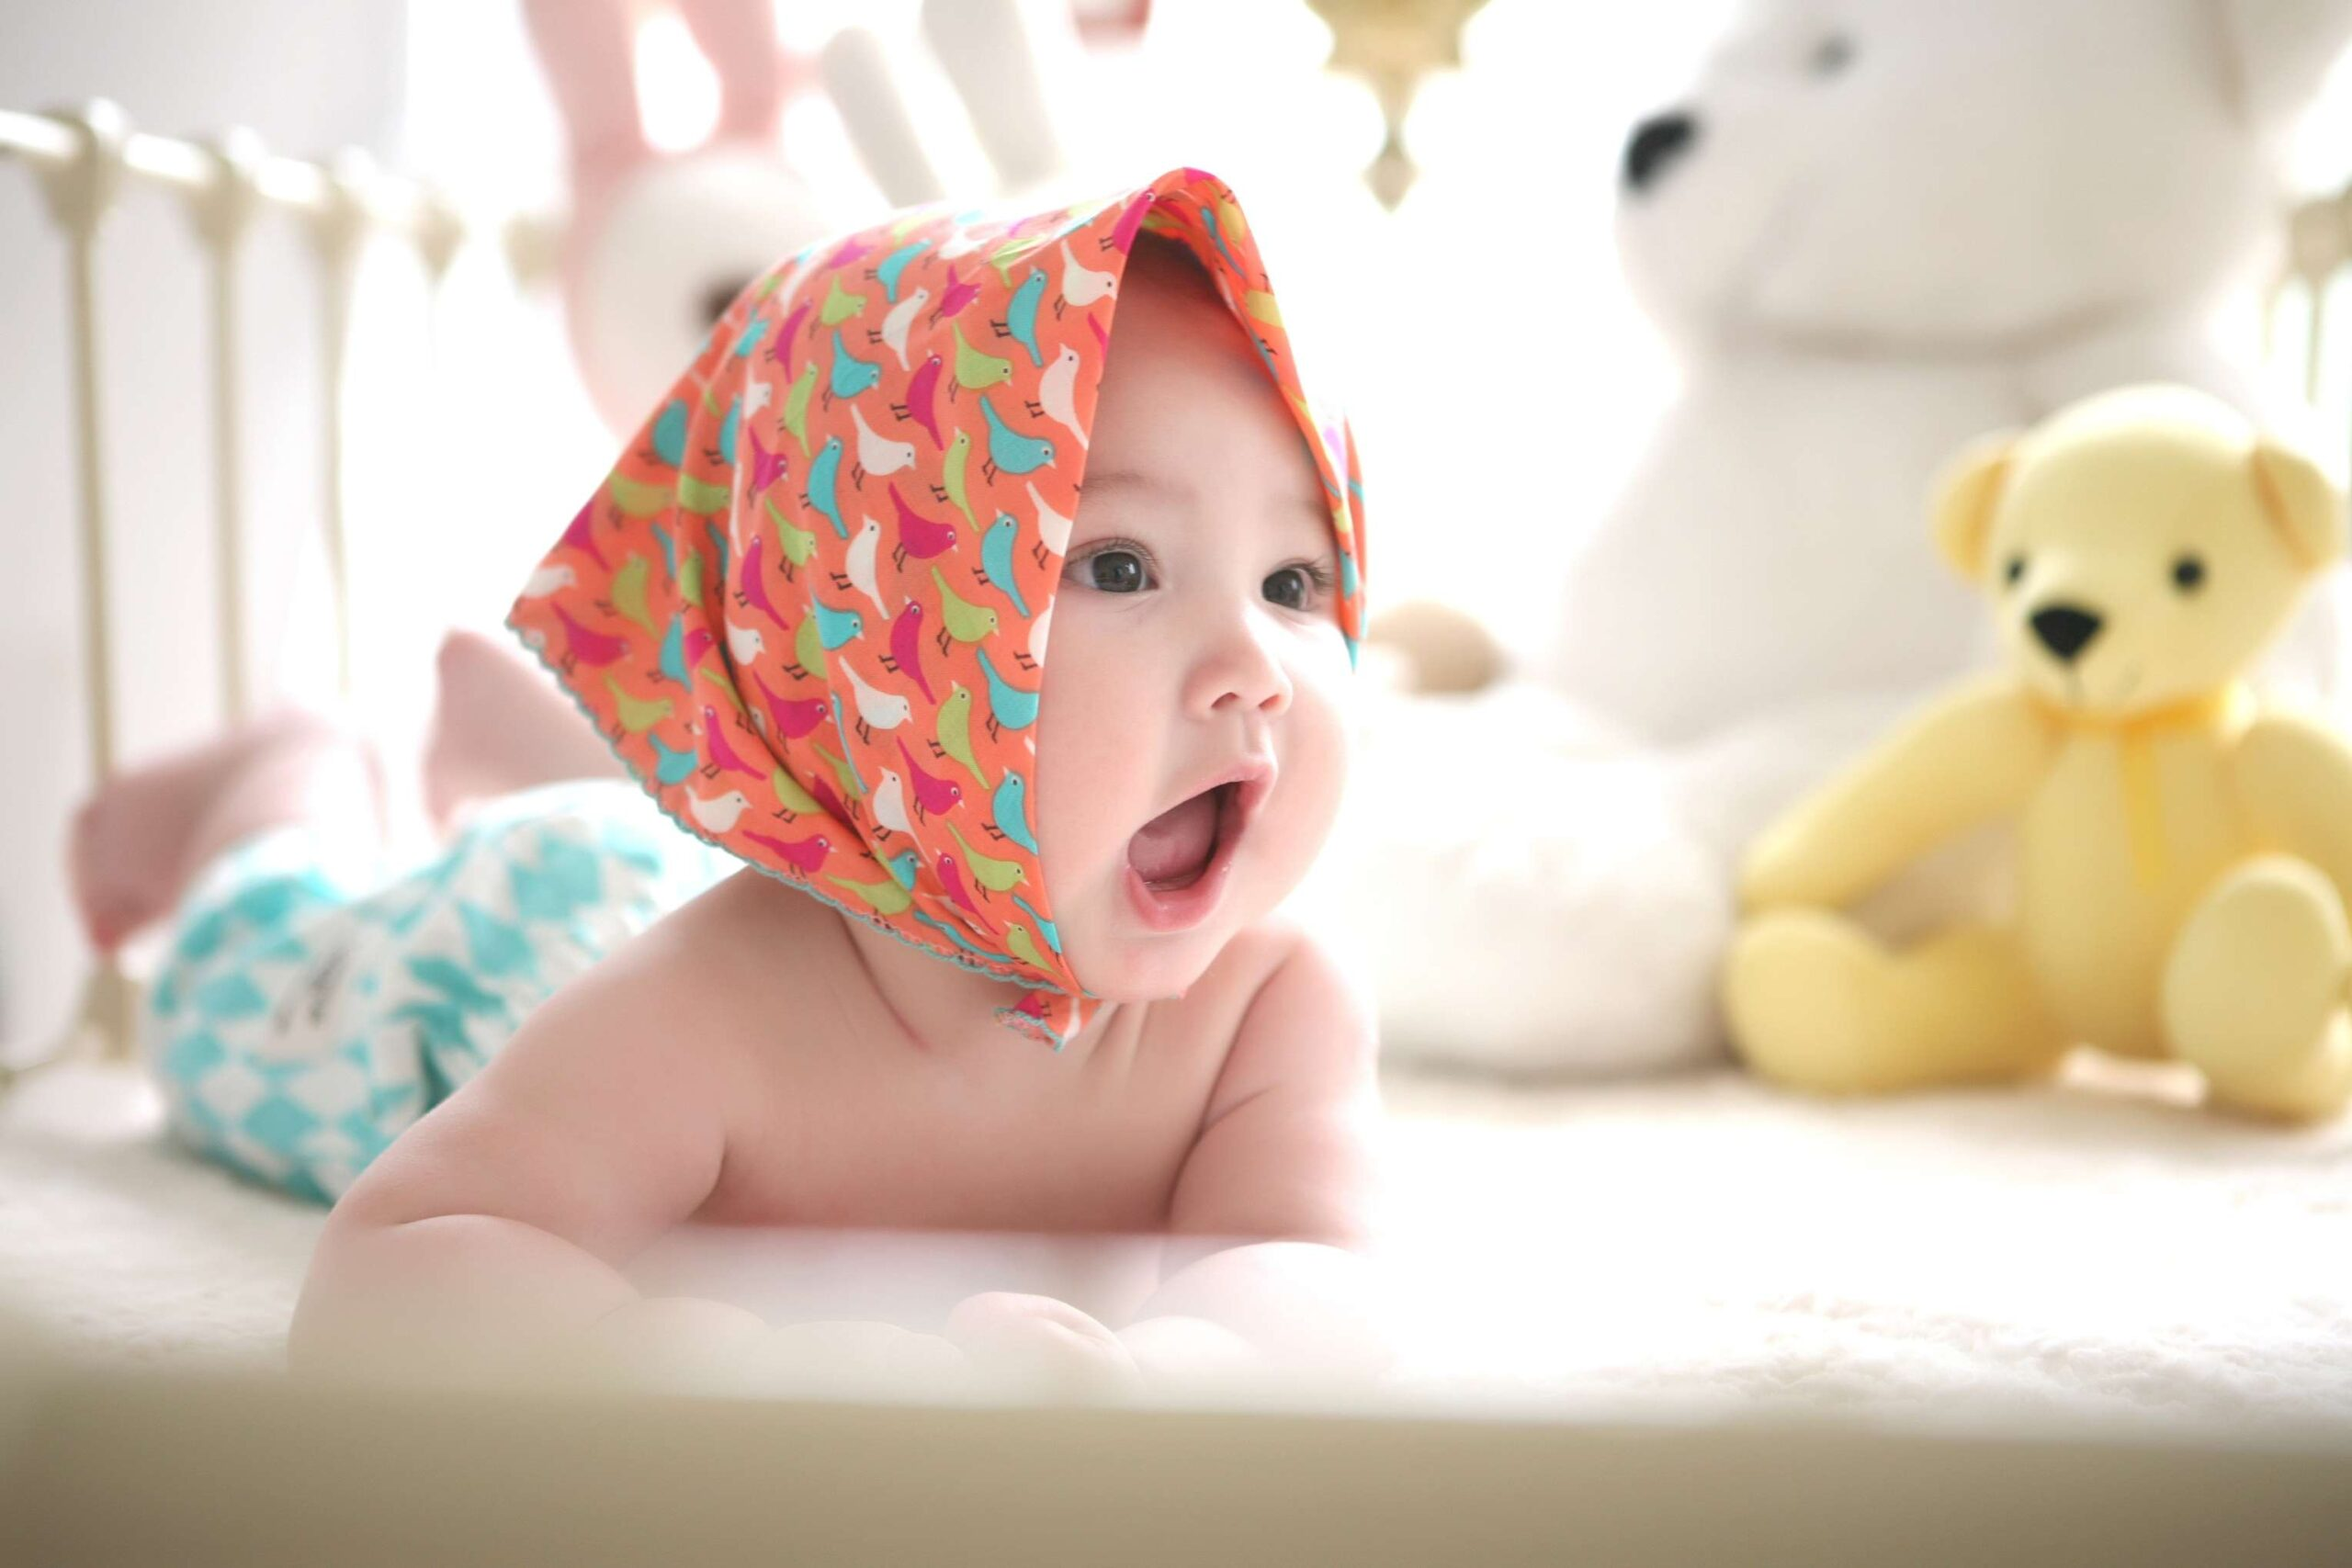 A Baby's First Tooth: 5 Things Parents Should Know